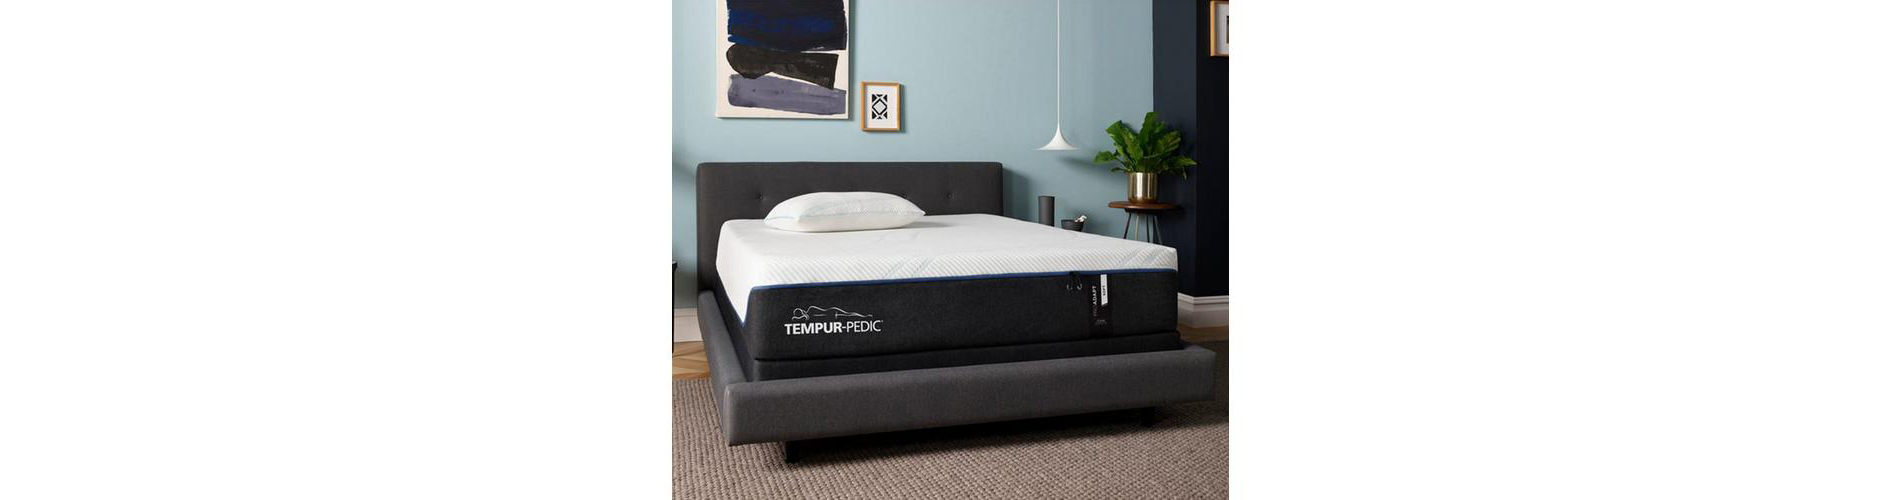 Tempur-Pedic bed